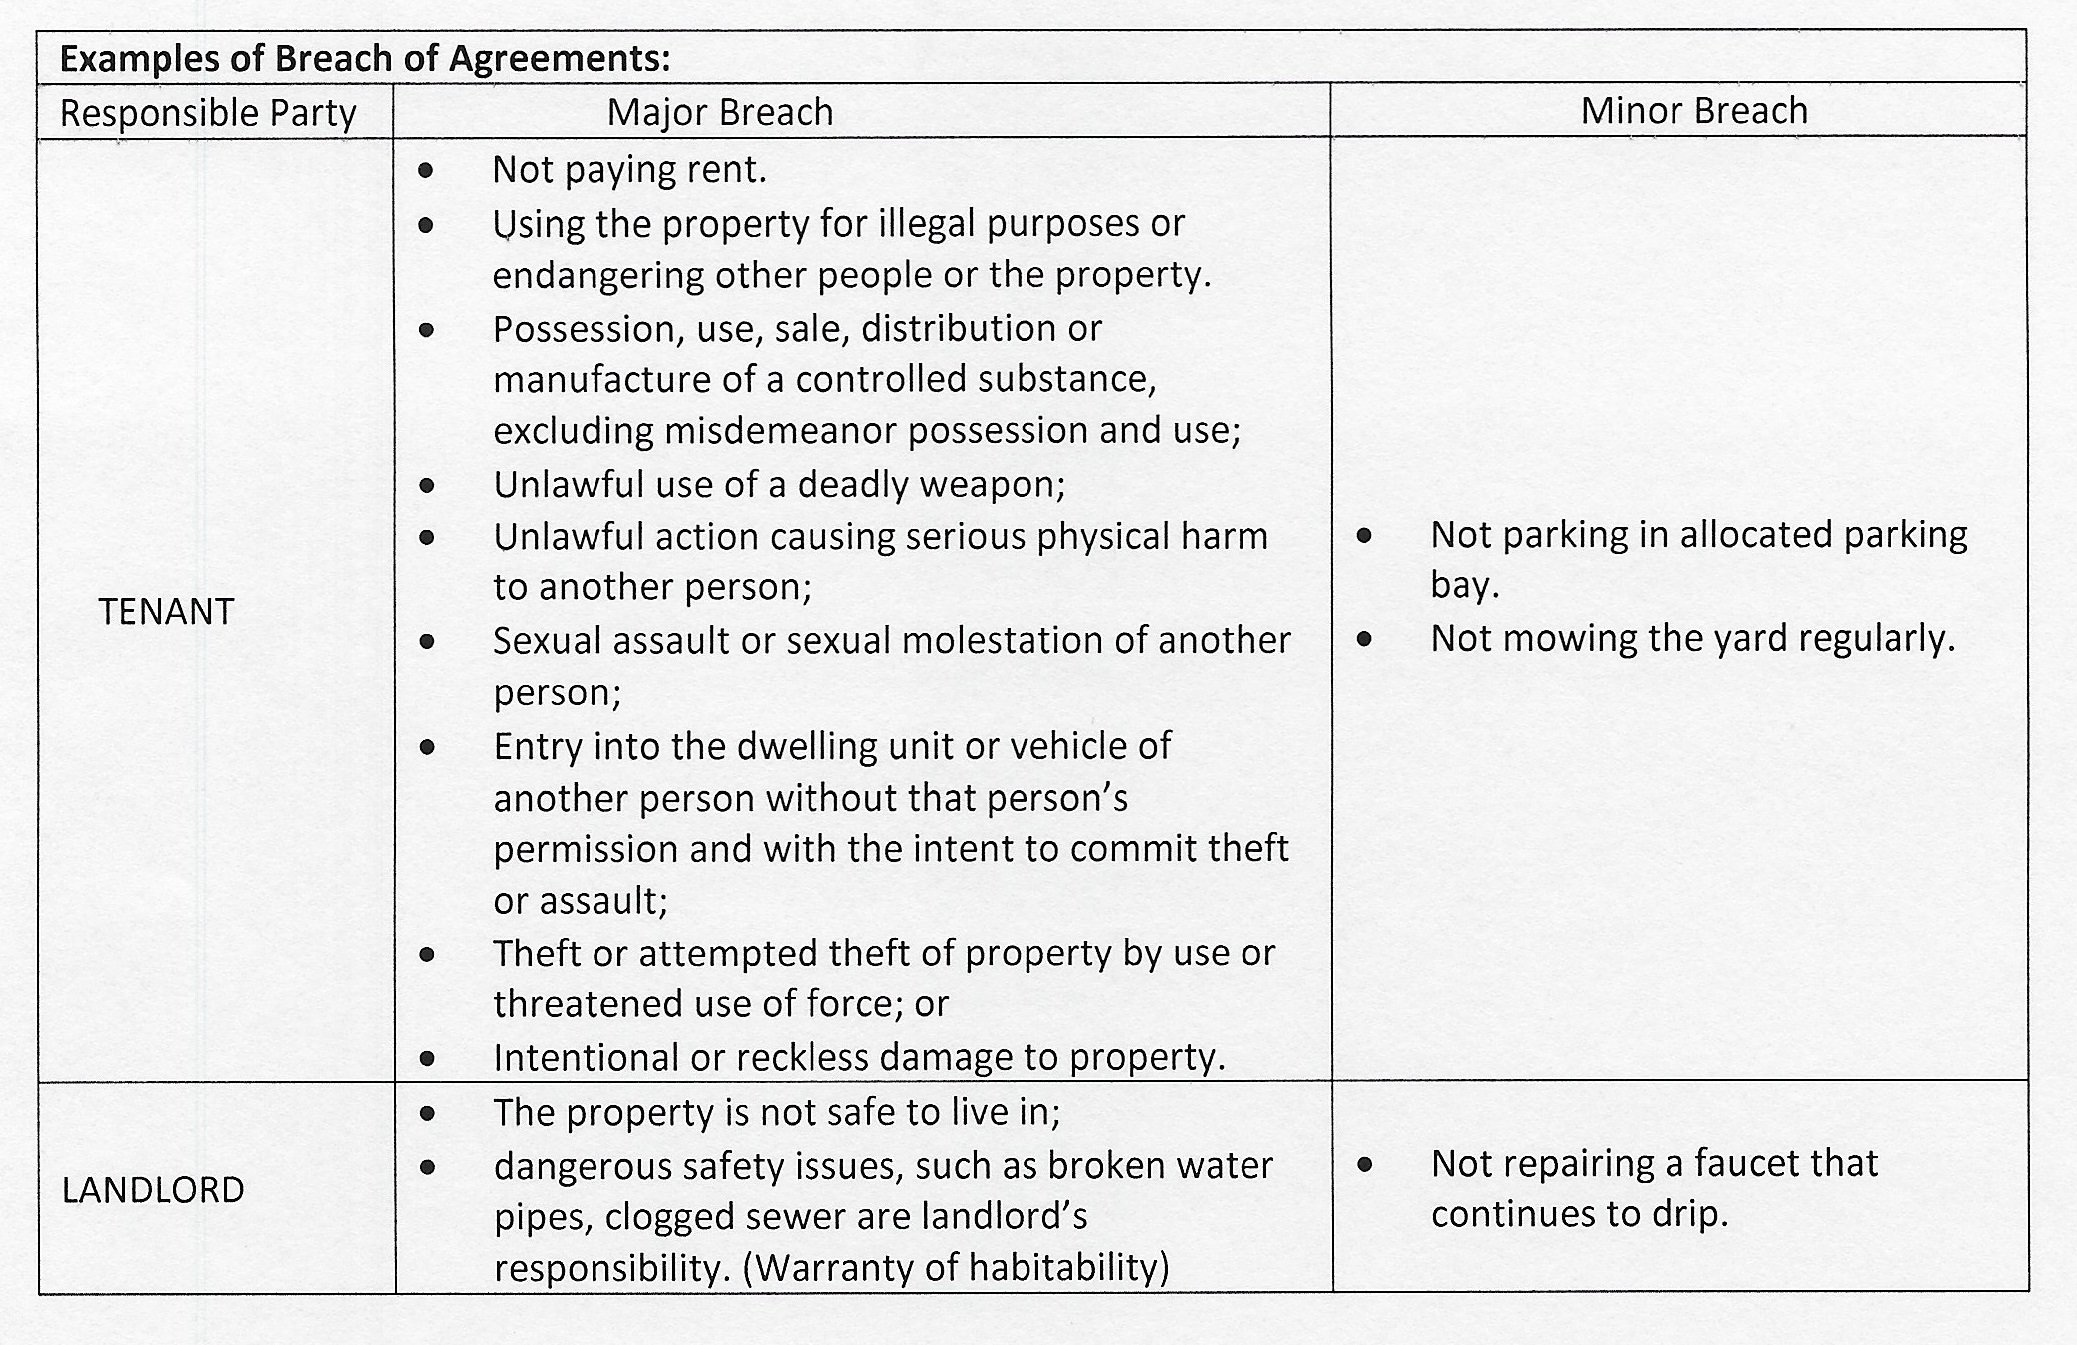 Breach of Agreements